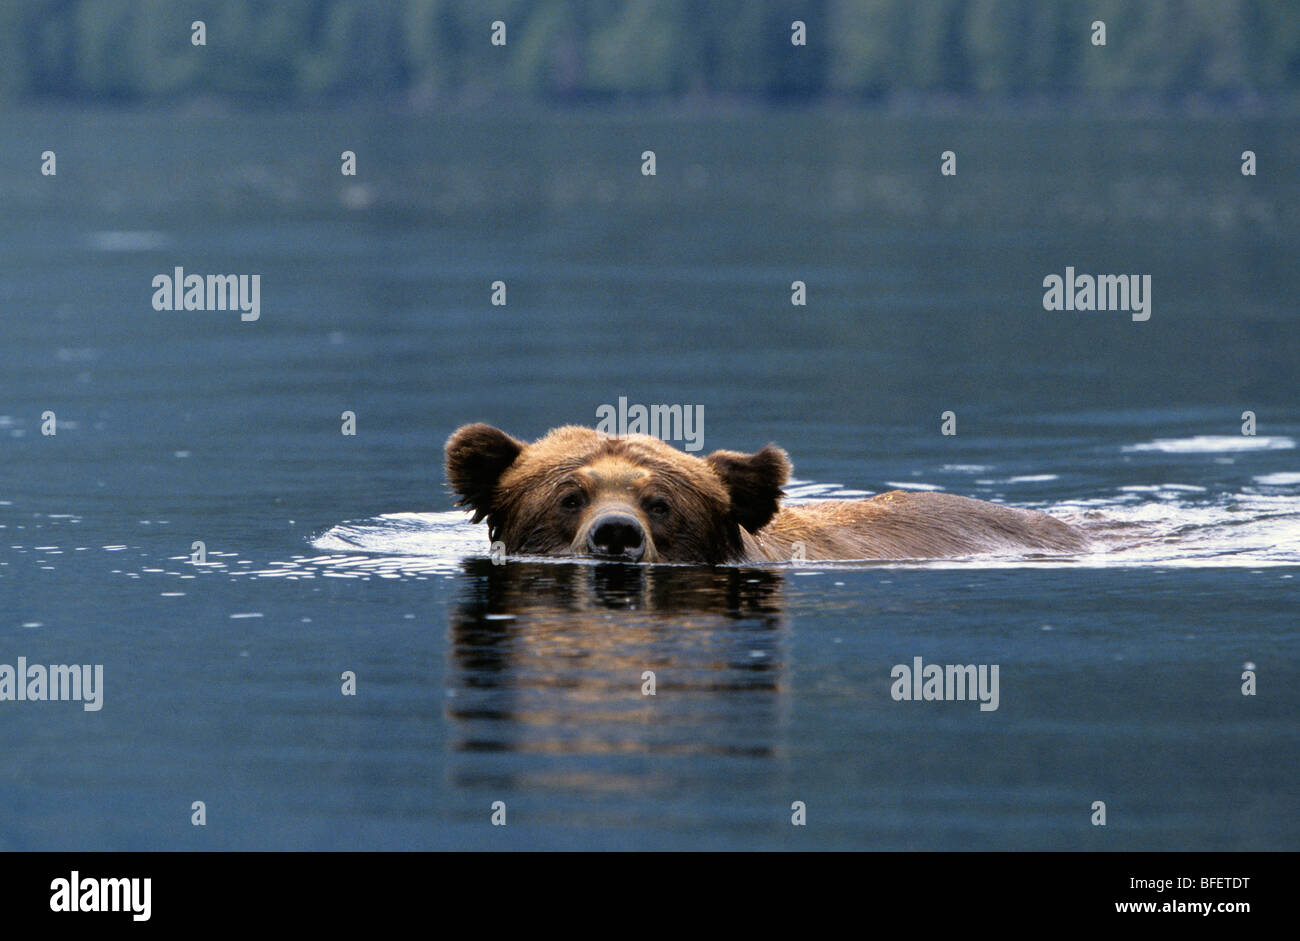 Adult male Grizzly bear (Ursus arctos horribilis) swimming across a saltwater inlet Khutzeymateen Grizzly Bear Sanctuary Stock Photo